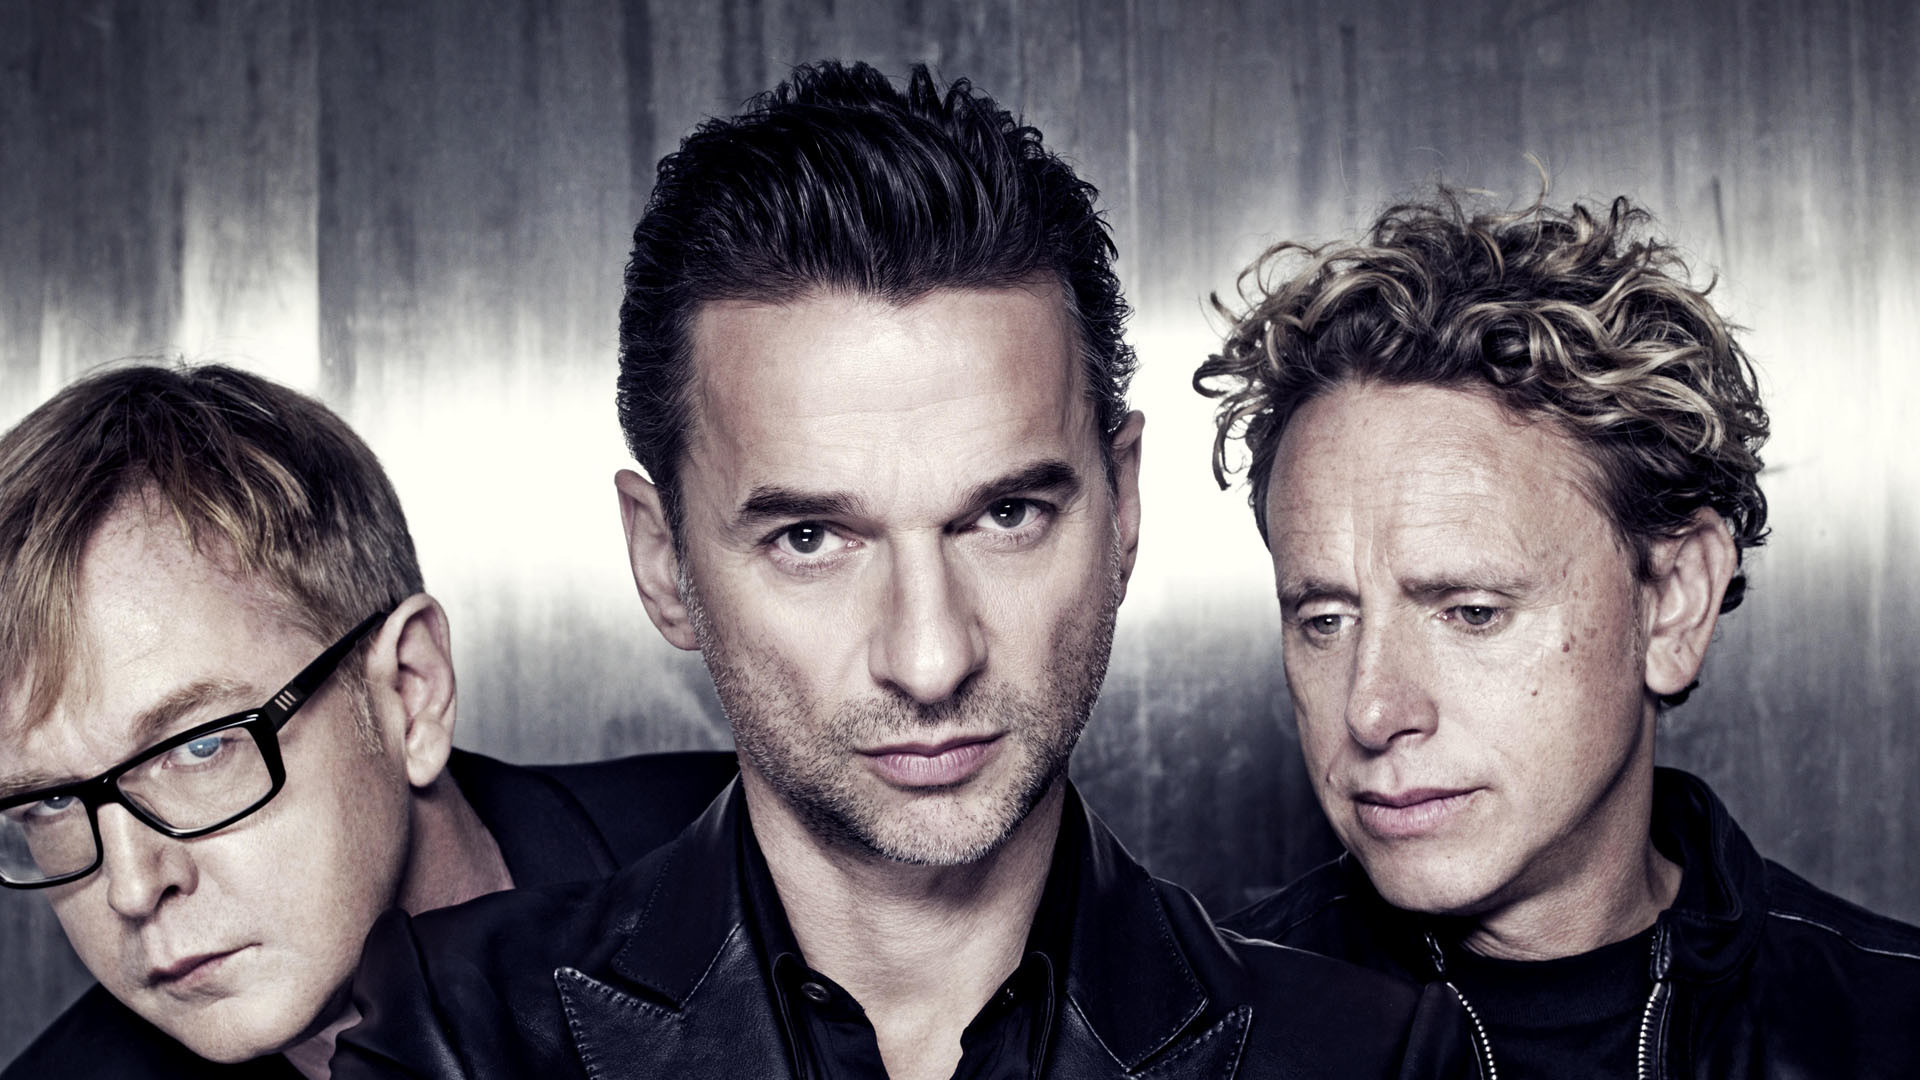 1920x1080 Musik - Depeche Mode Wallpaper